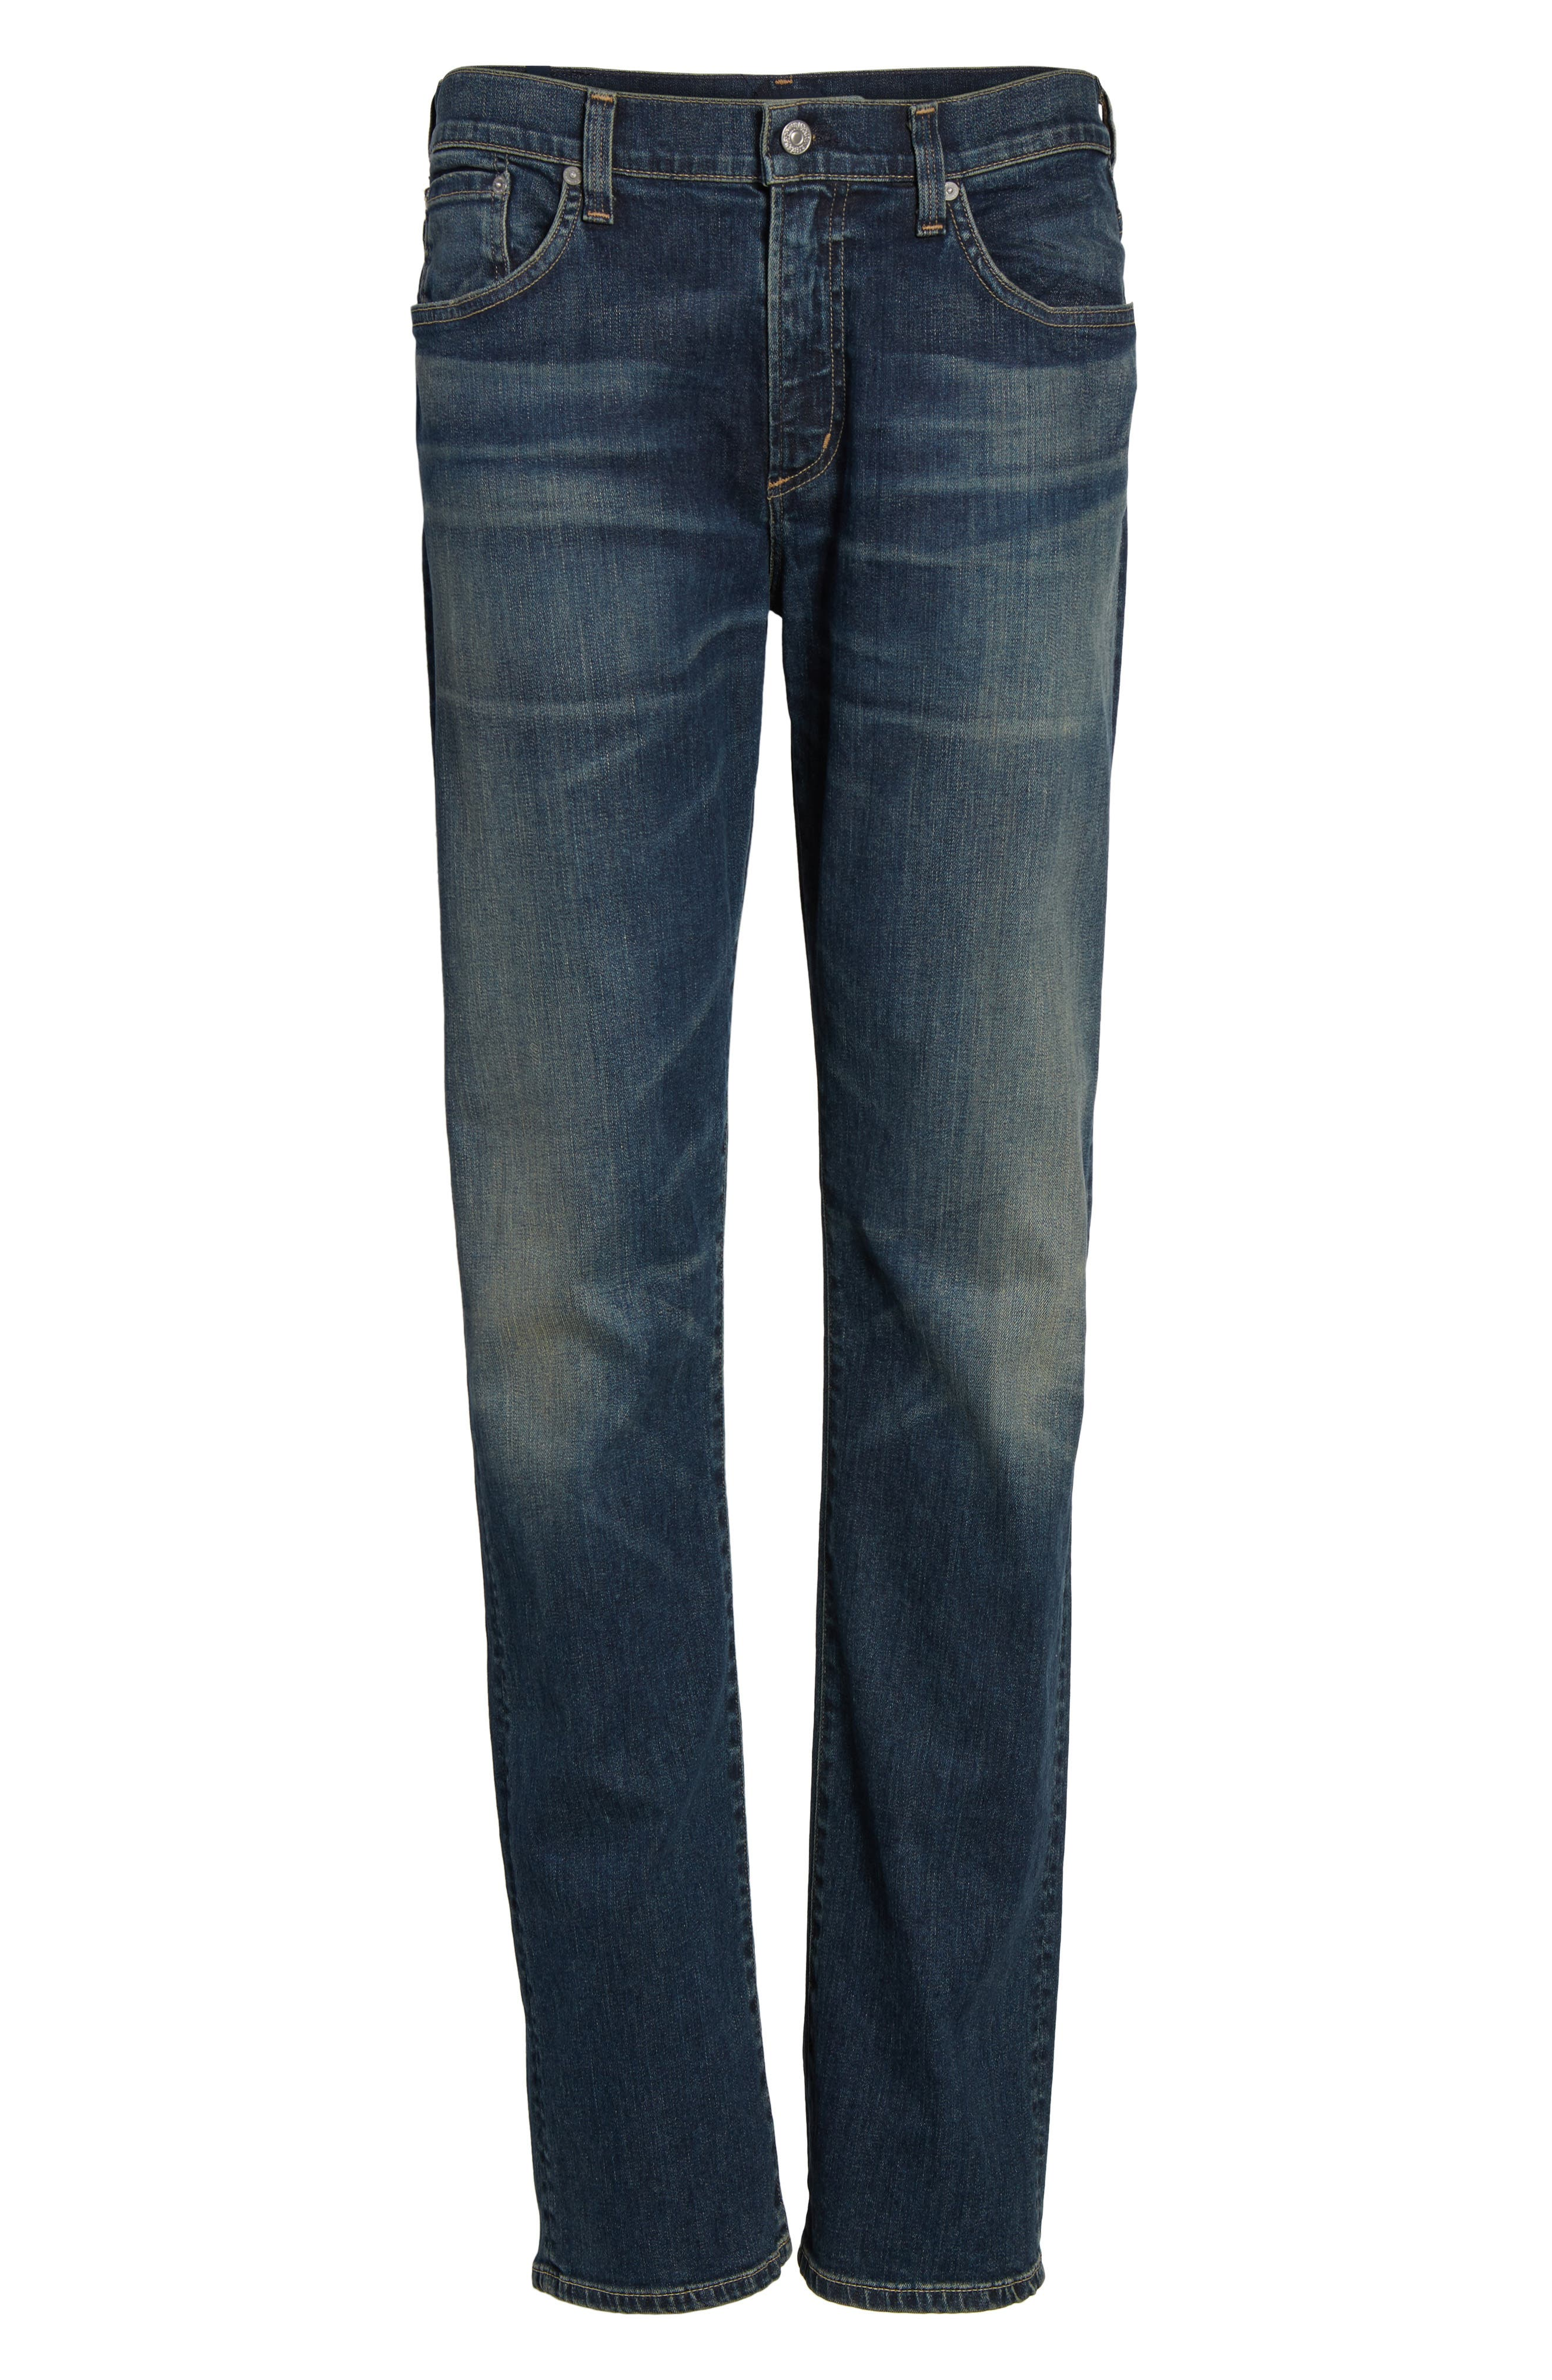 Core Slim Fit Jeans,                             Alternate thumbnail 6, color,                             472